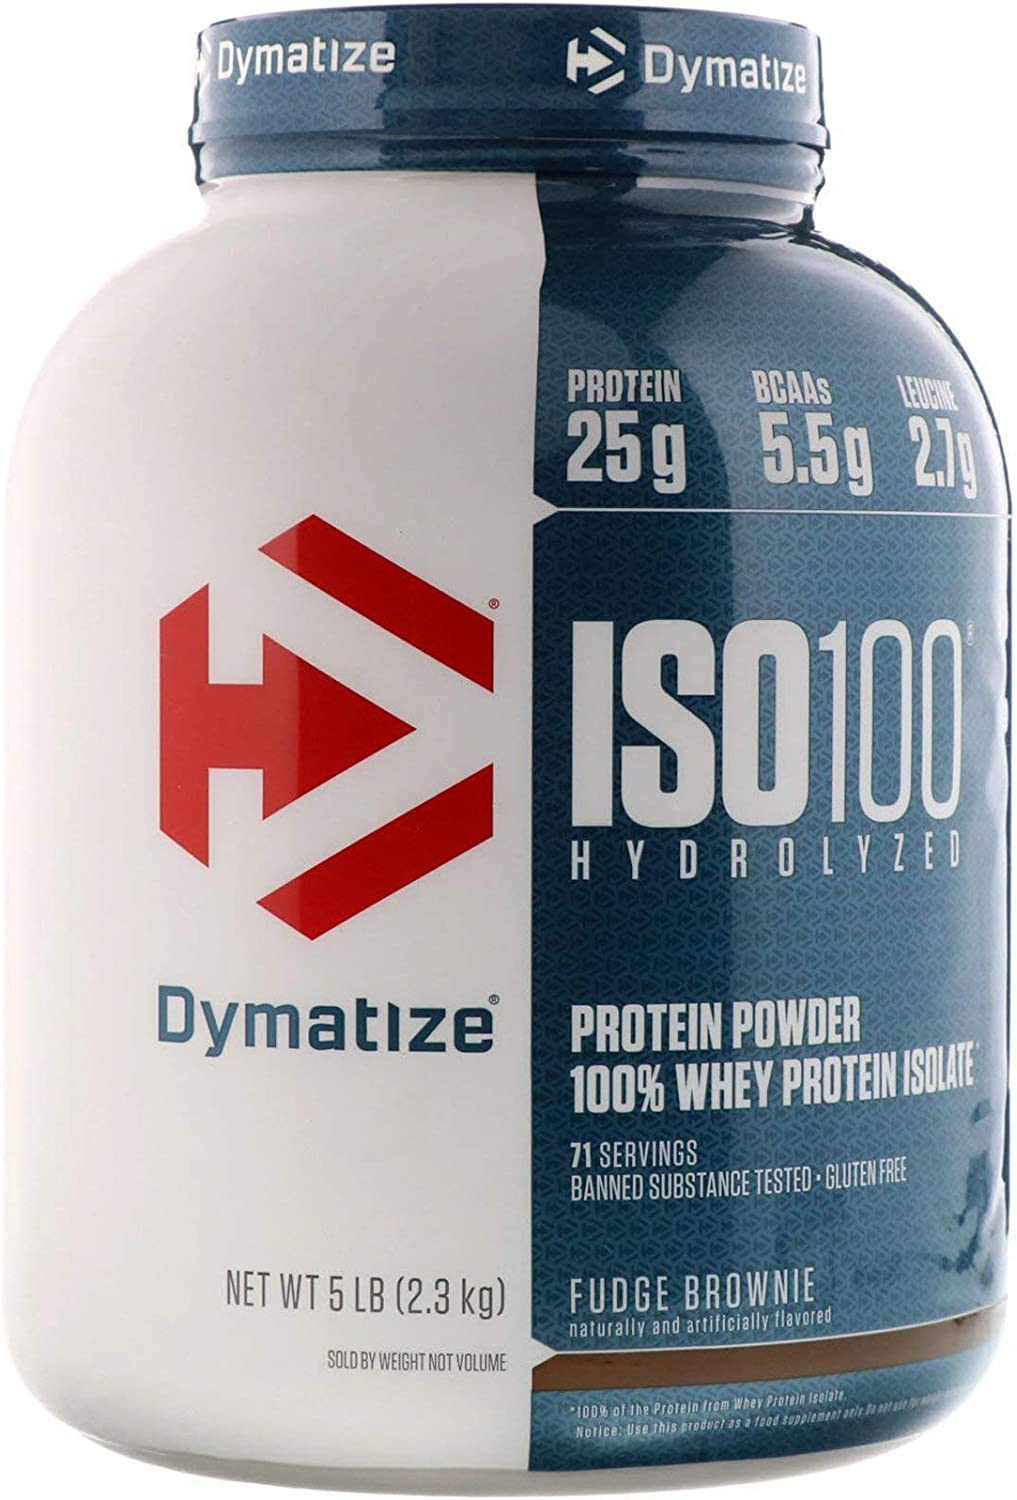 Dymatize ISO 100 Hydrolyzed Whey Spring new work one after another Powder Protein Fudge Isolate B Quantity limited